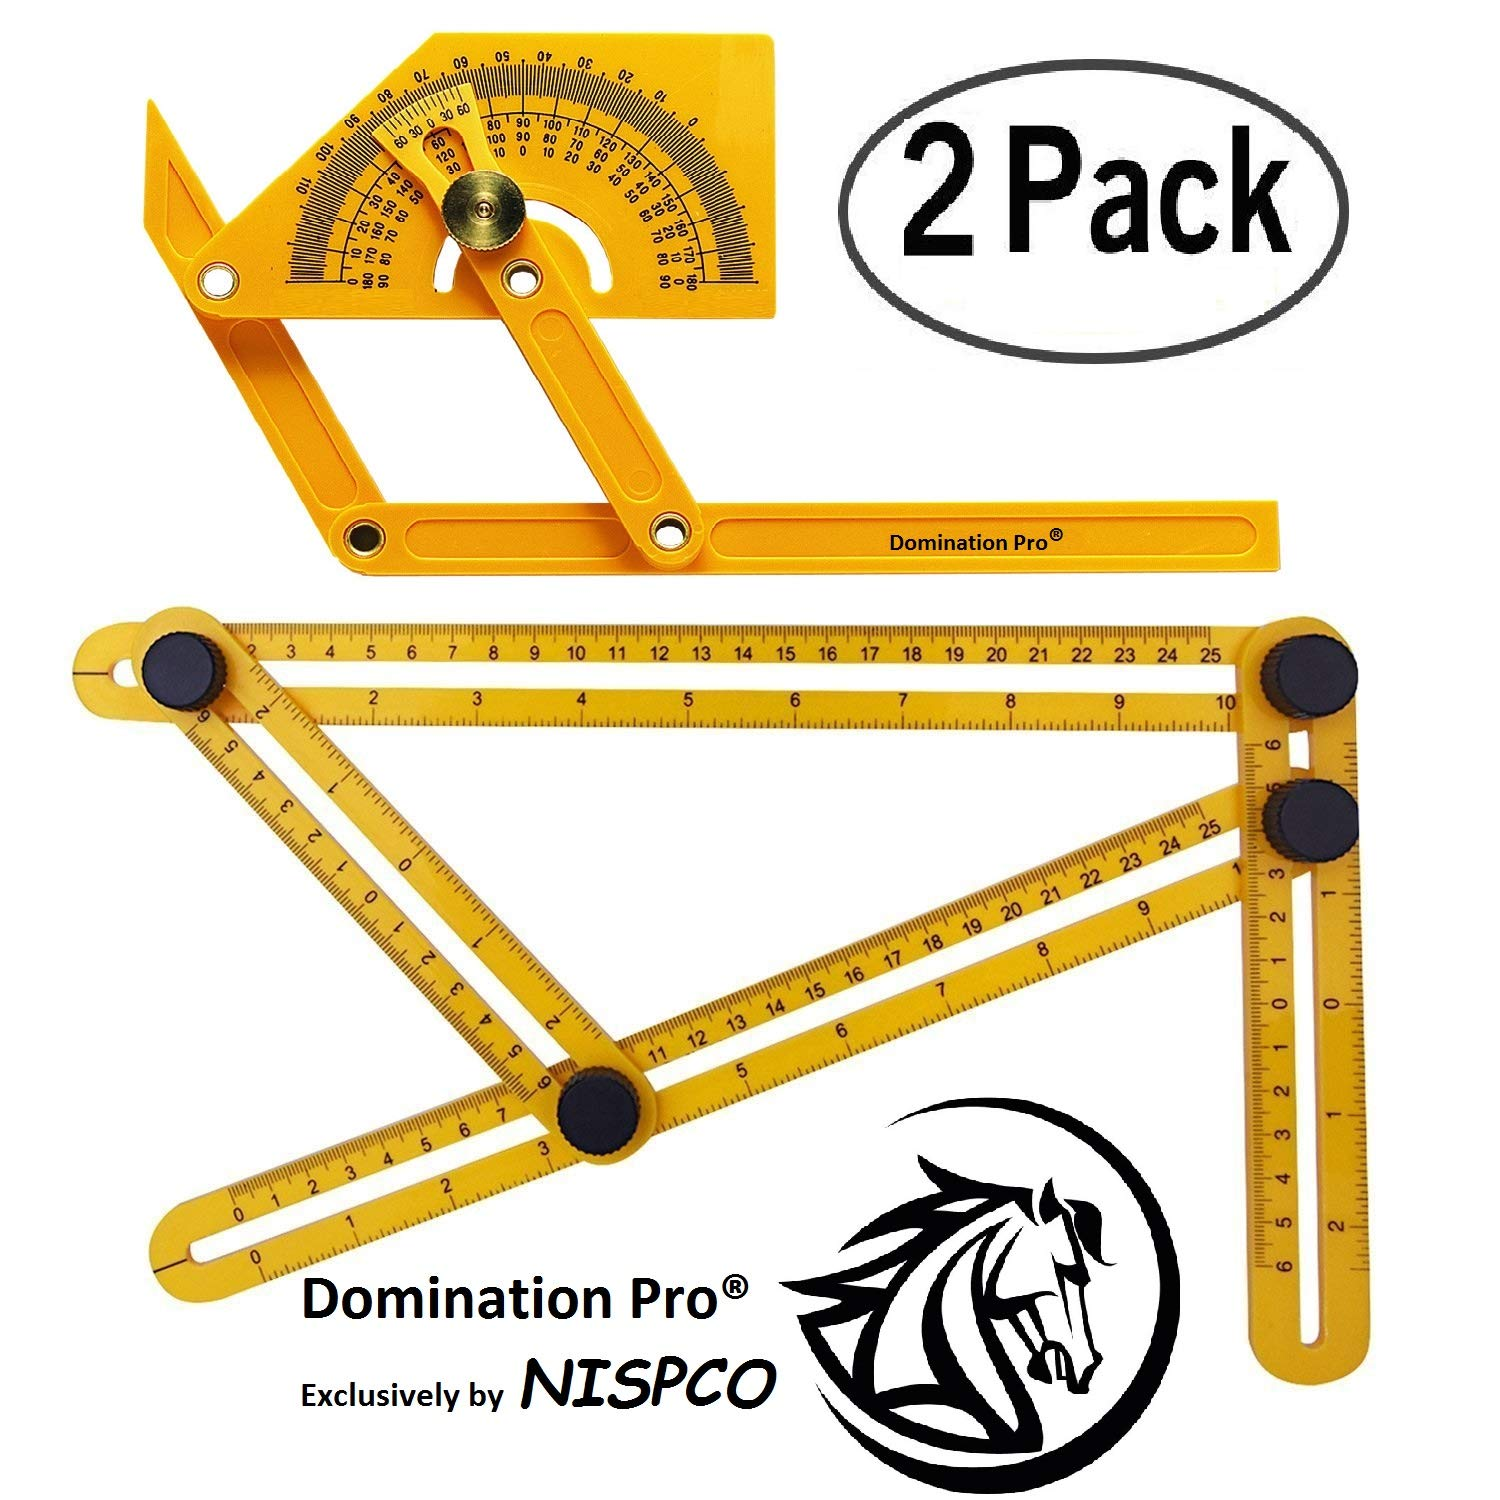 Domination Pro Set of 2 Construction Rulers Angularizer Ruler Multi Angle Measuring Tool Angulizer Ruler Angle Template Tool Protractor and Angle Finder .Exclusively by NISPCO